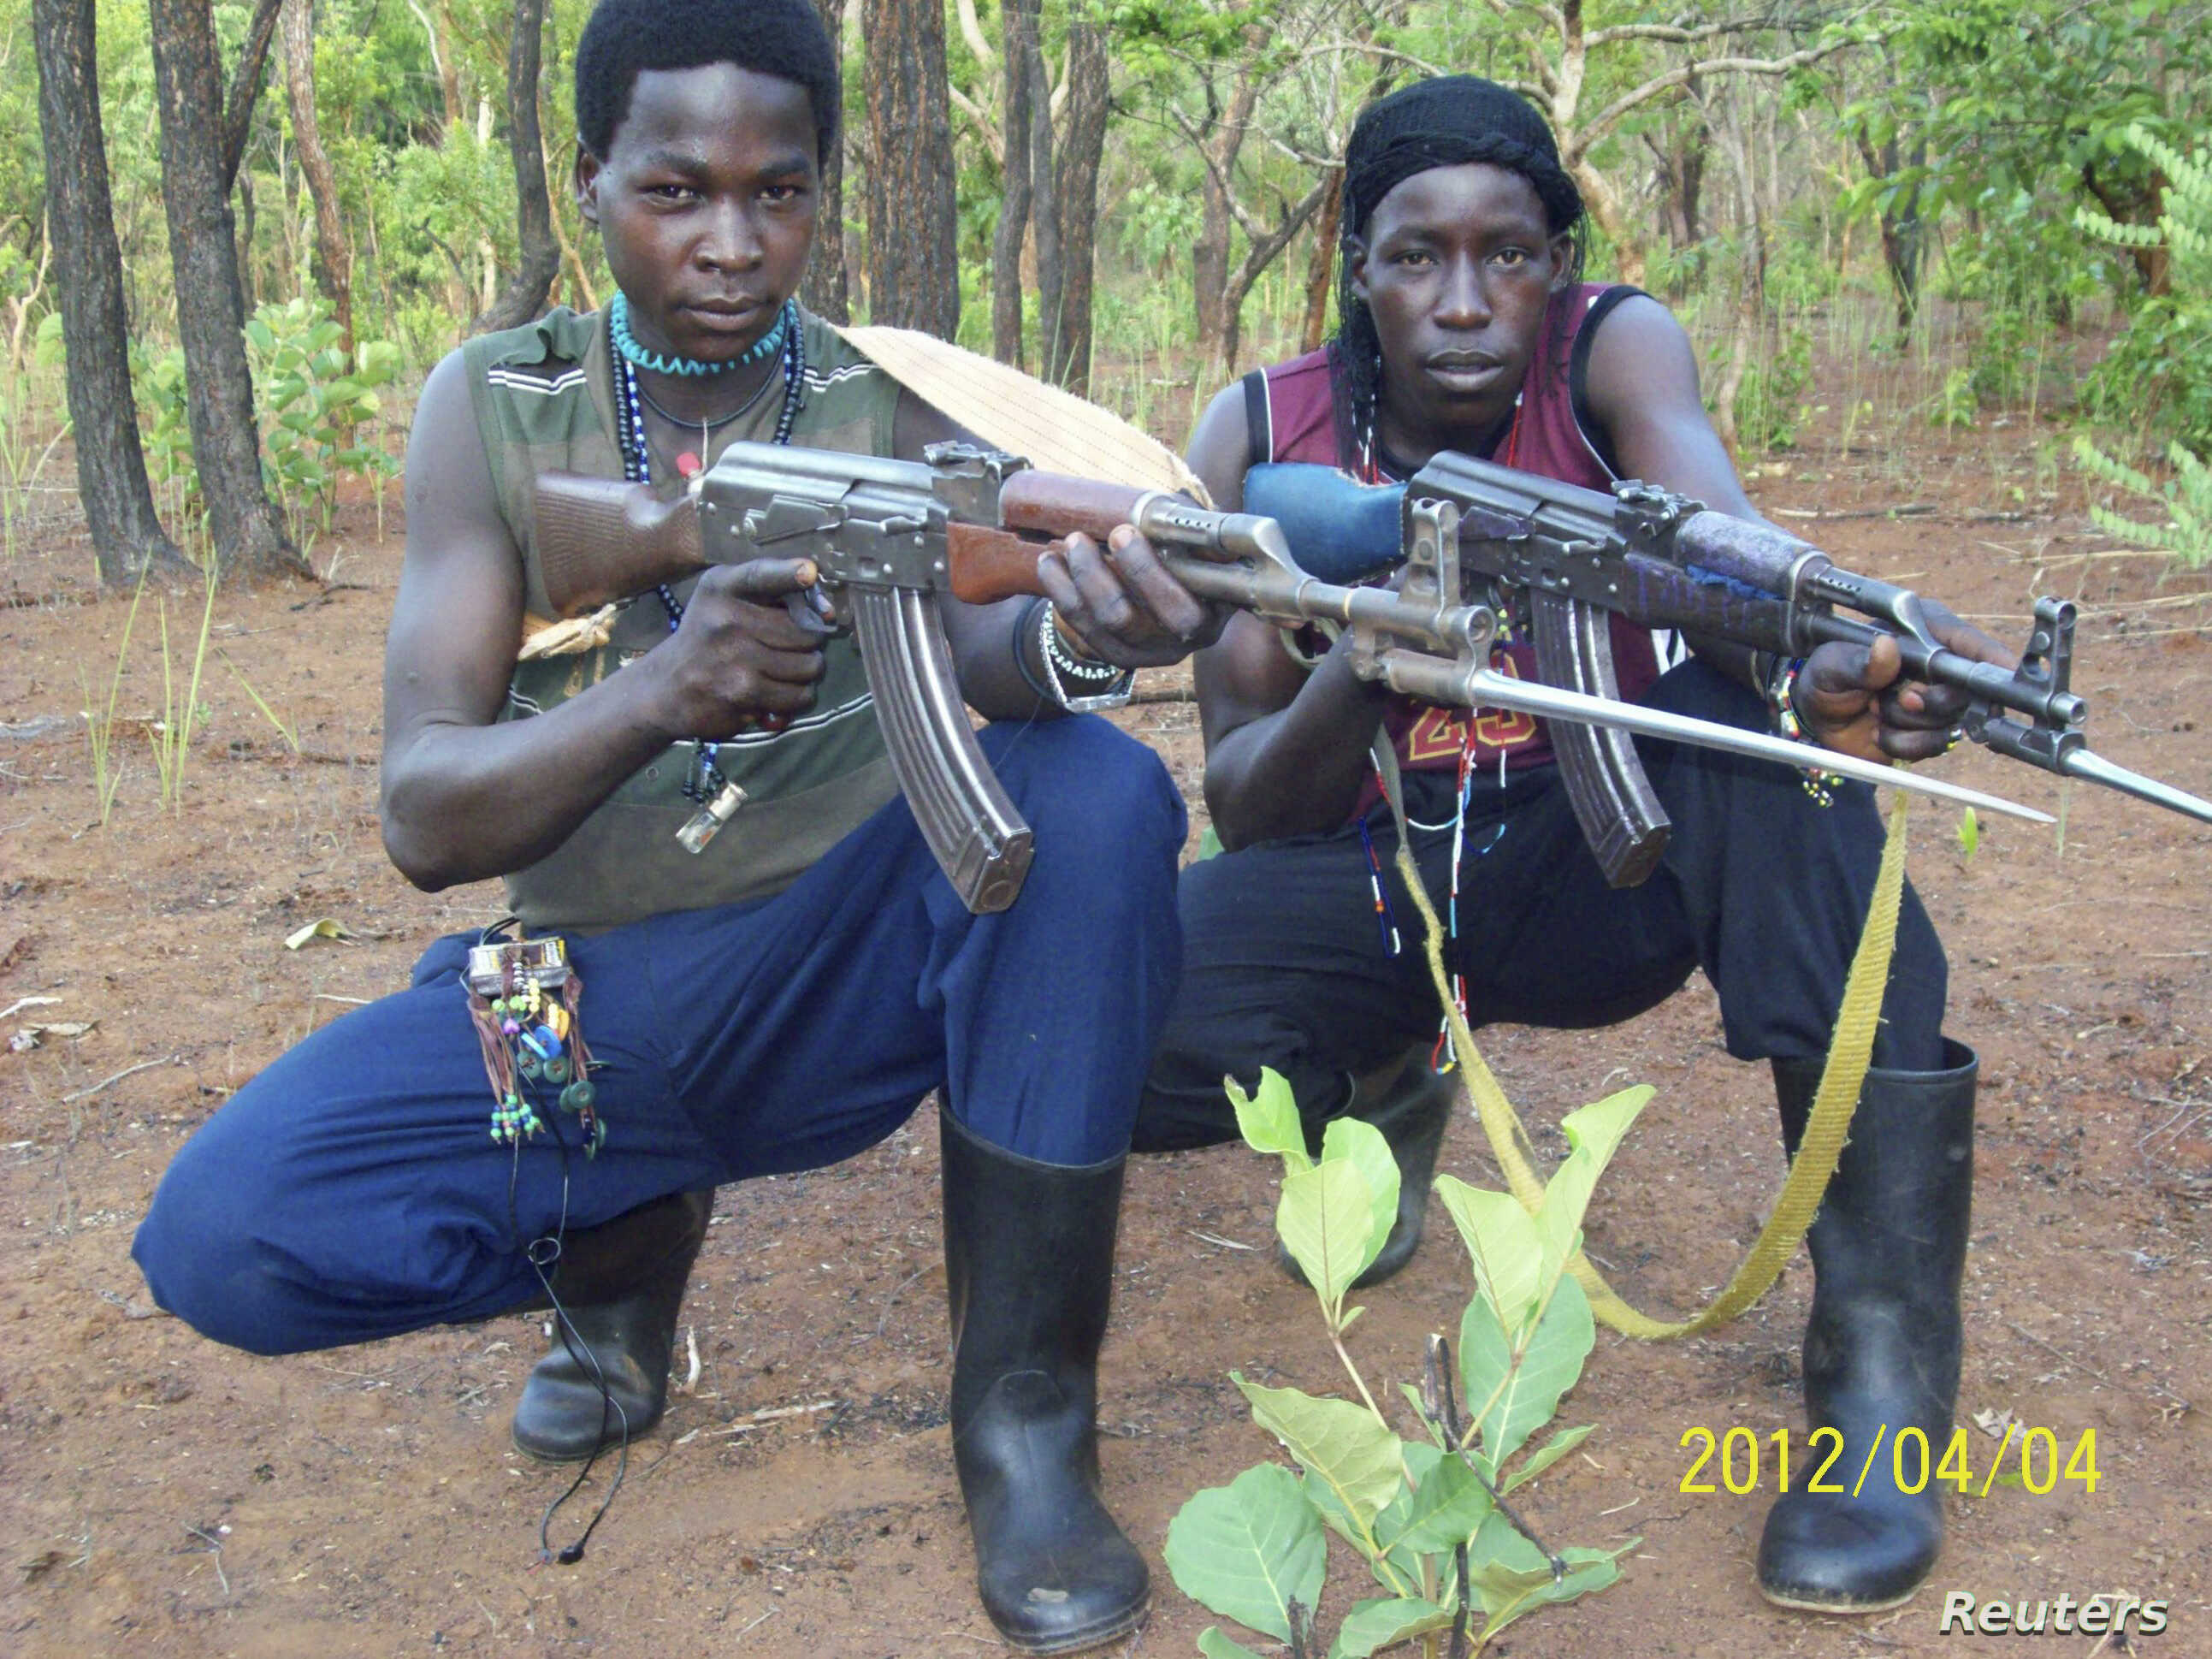 FILE - Fighters loyal to the Lord's Resistance Army pose with their rifles inside the forest near River Mbou in the Central African Republic in this handout picture dated April 4, 2012.